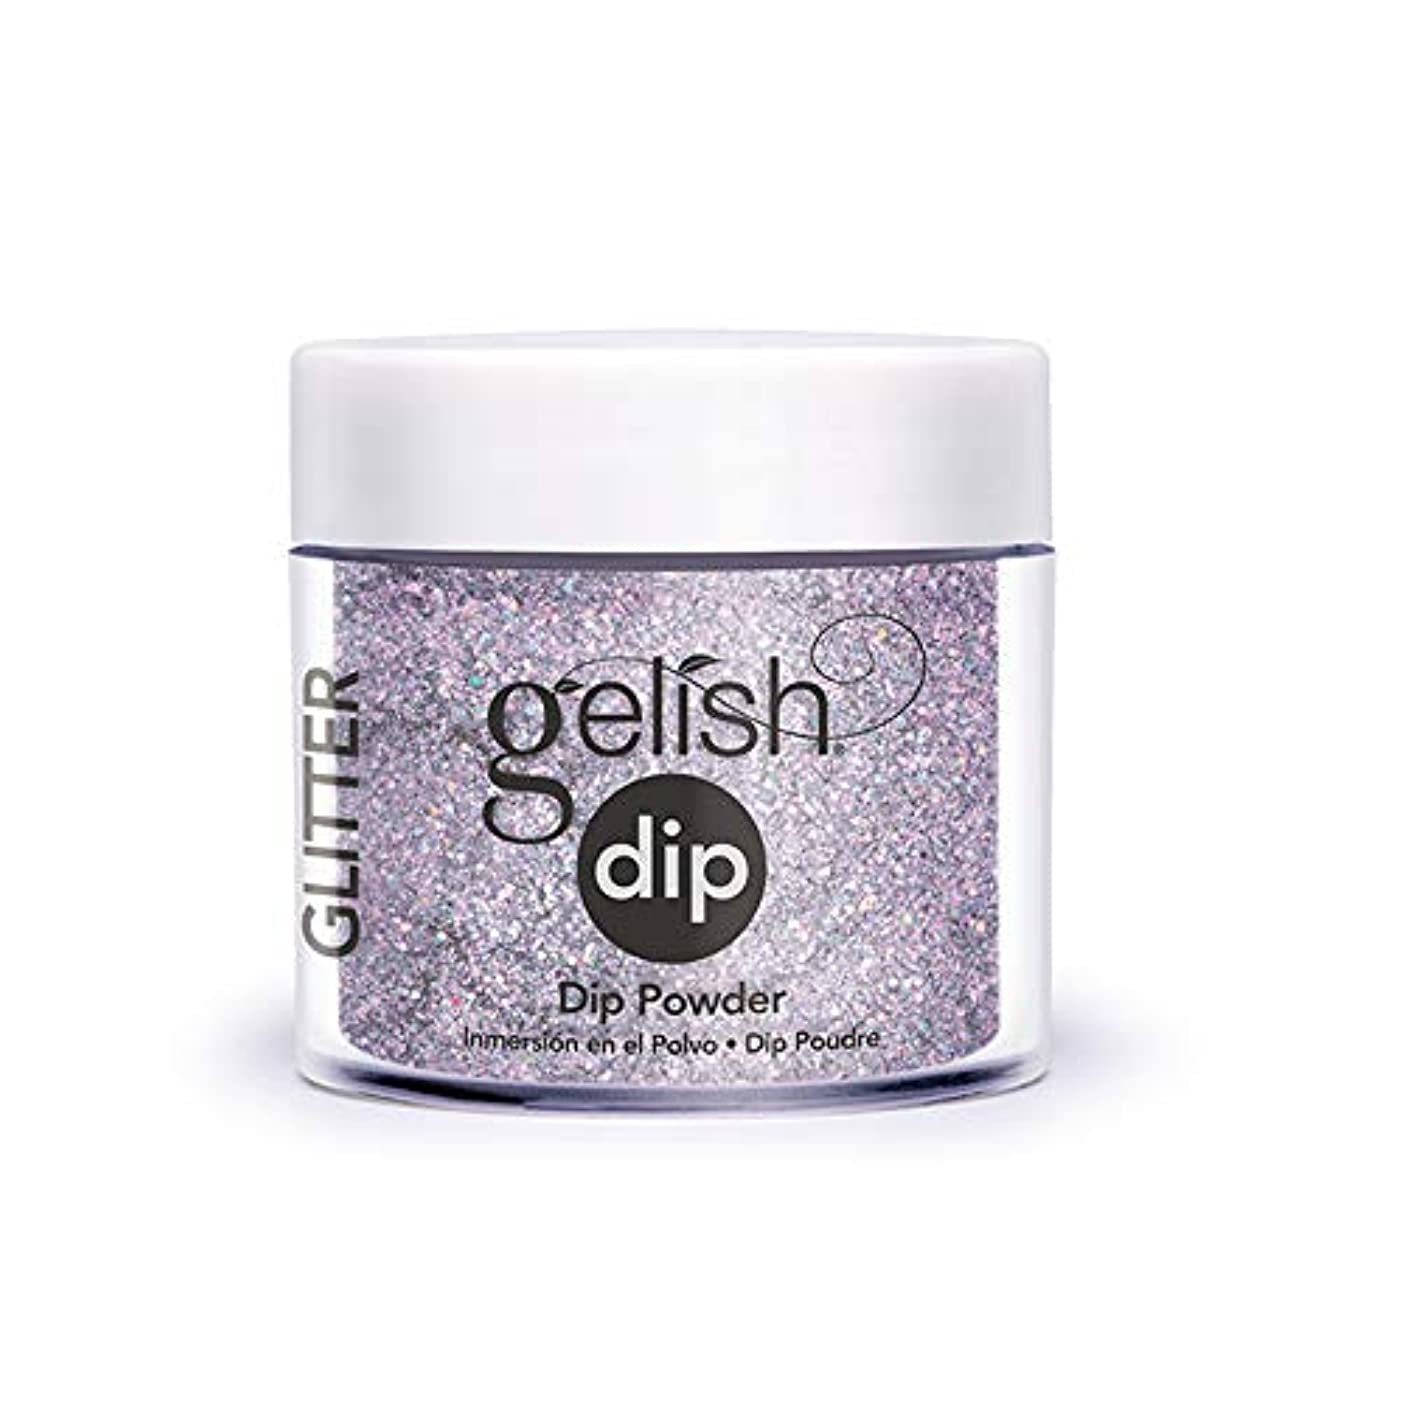 カレッジ傭兵真実Harmony Gelish - Acrylic Dip Powder - Make A Statement - 23g / 0.8oz